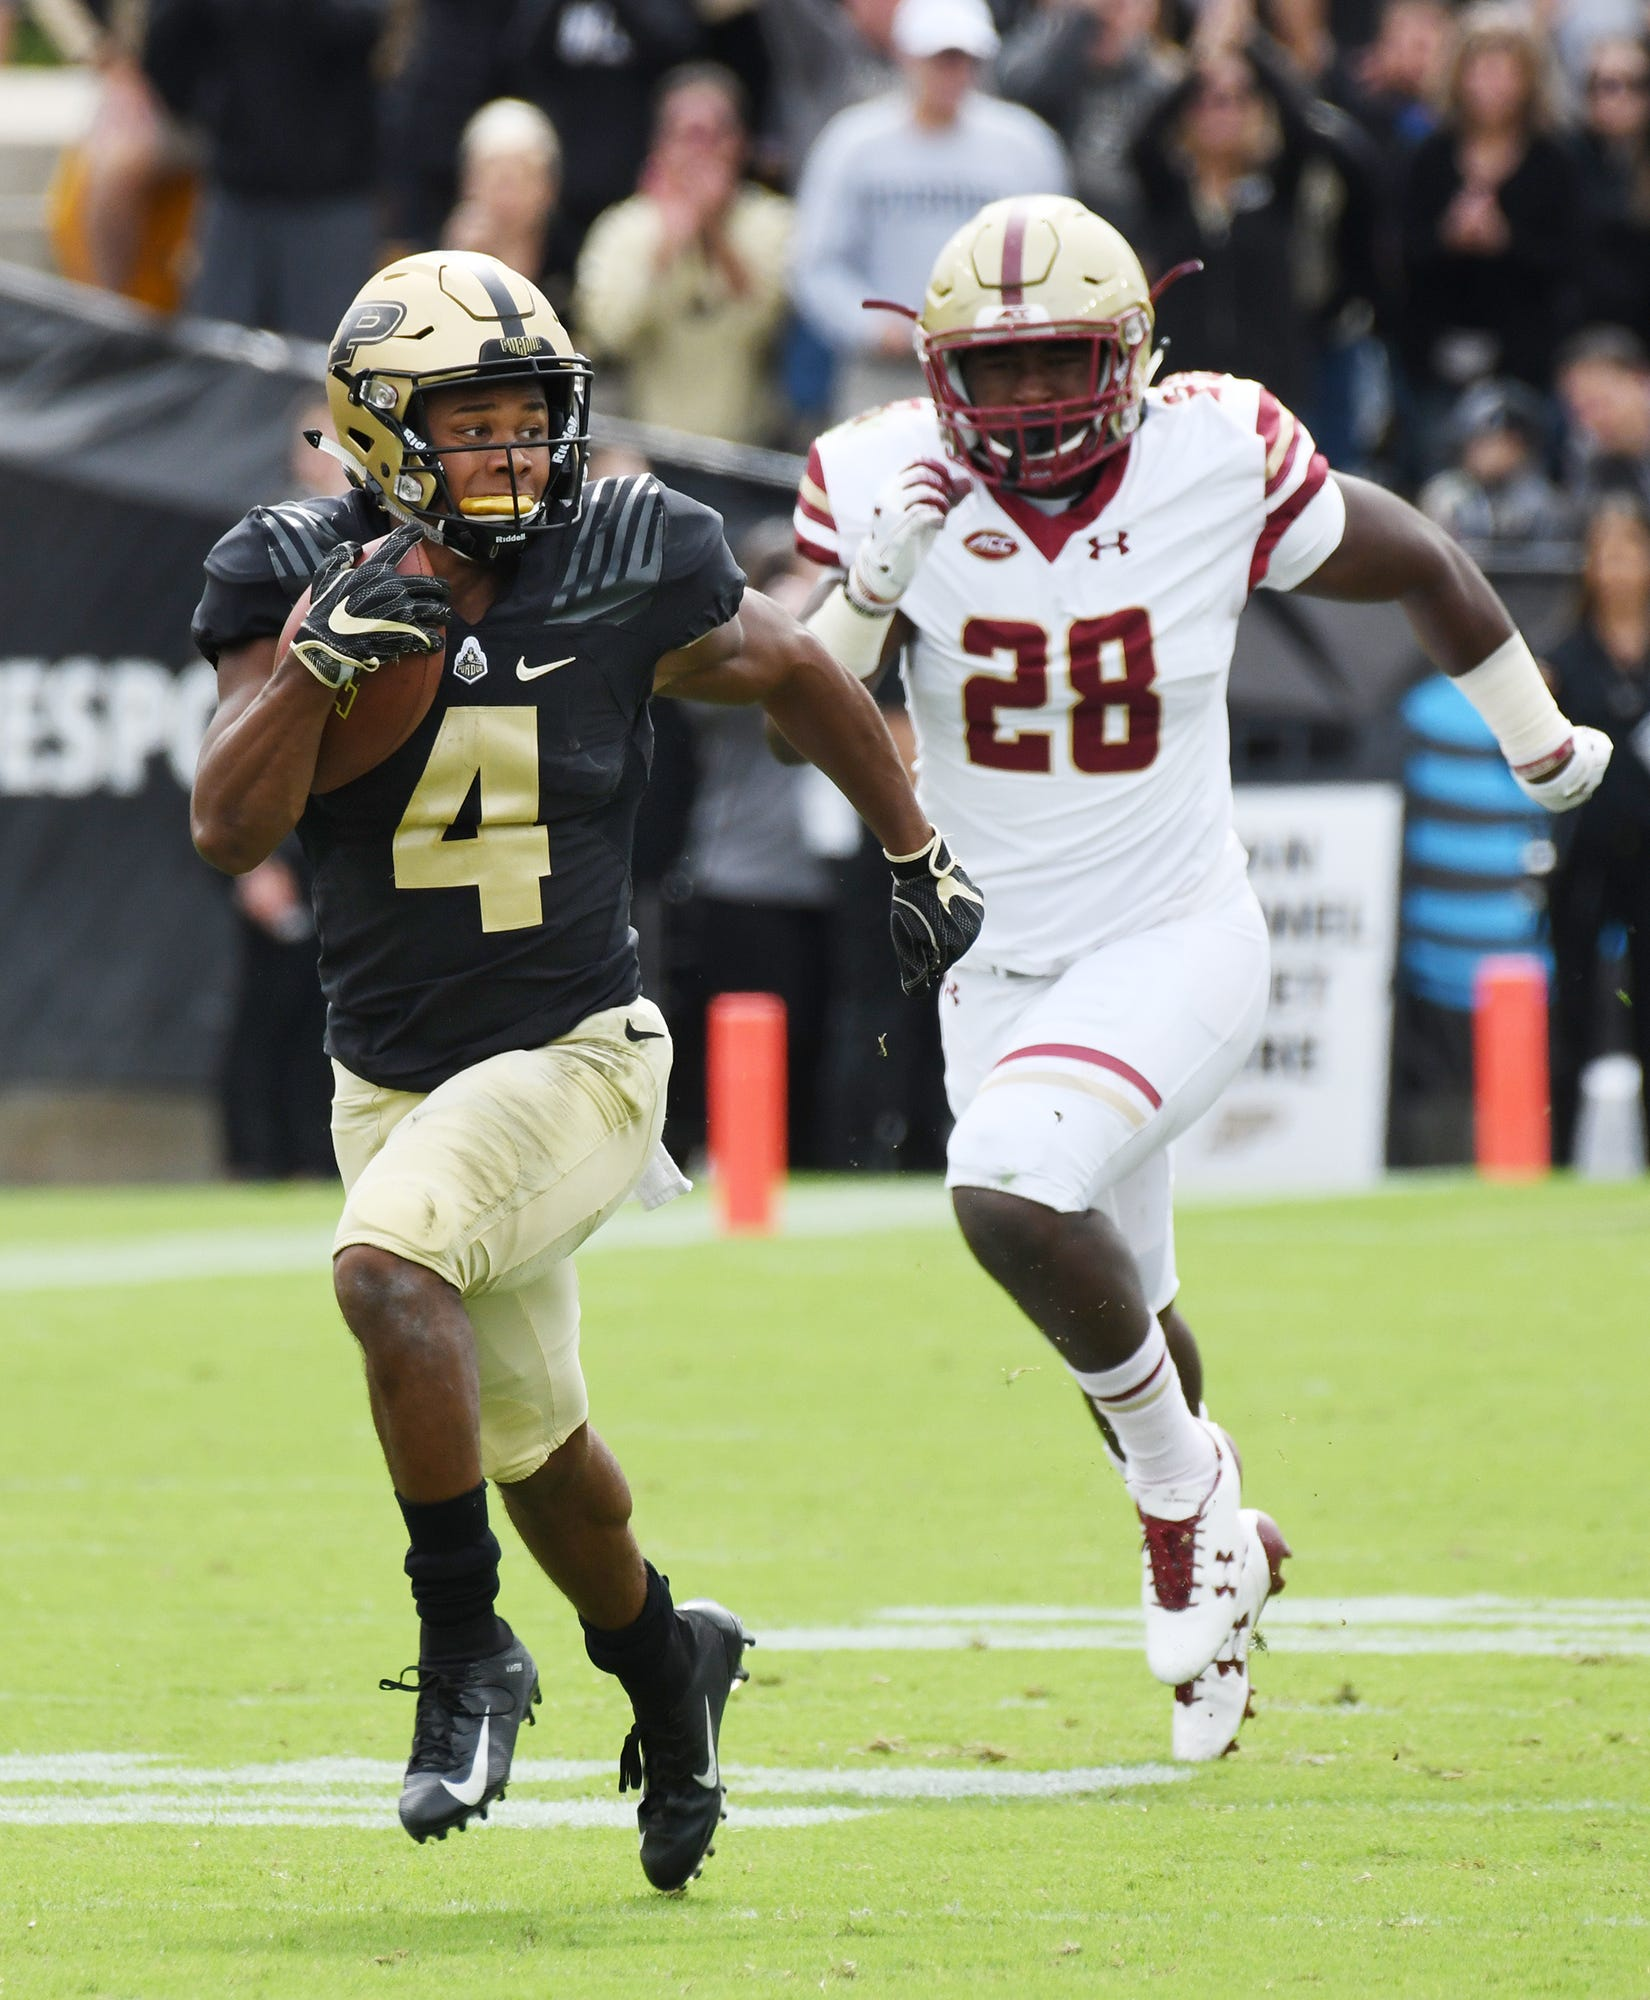 Rondale Moore of Purdue outruns John Lamot of Boston College on a first half touchdown reception.